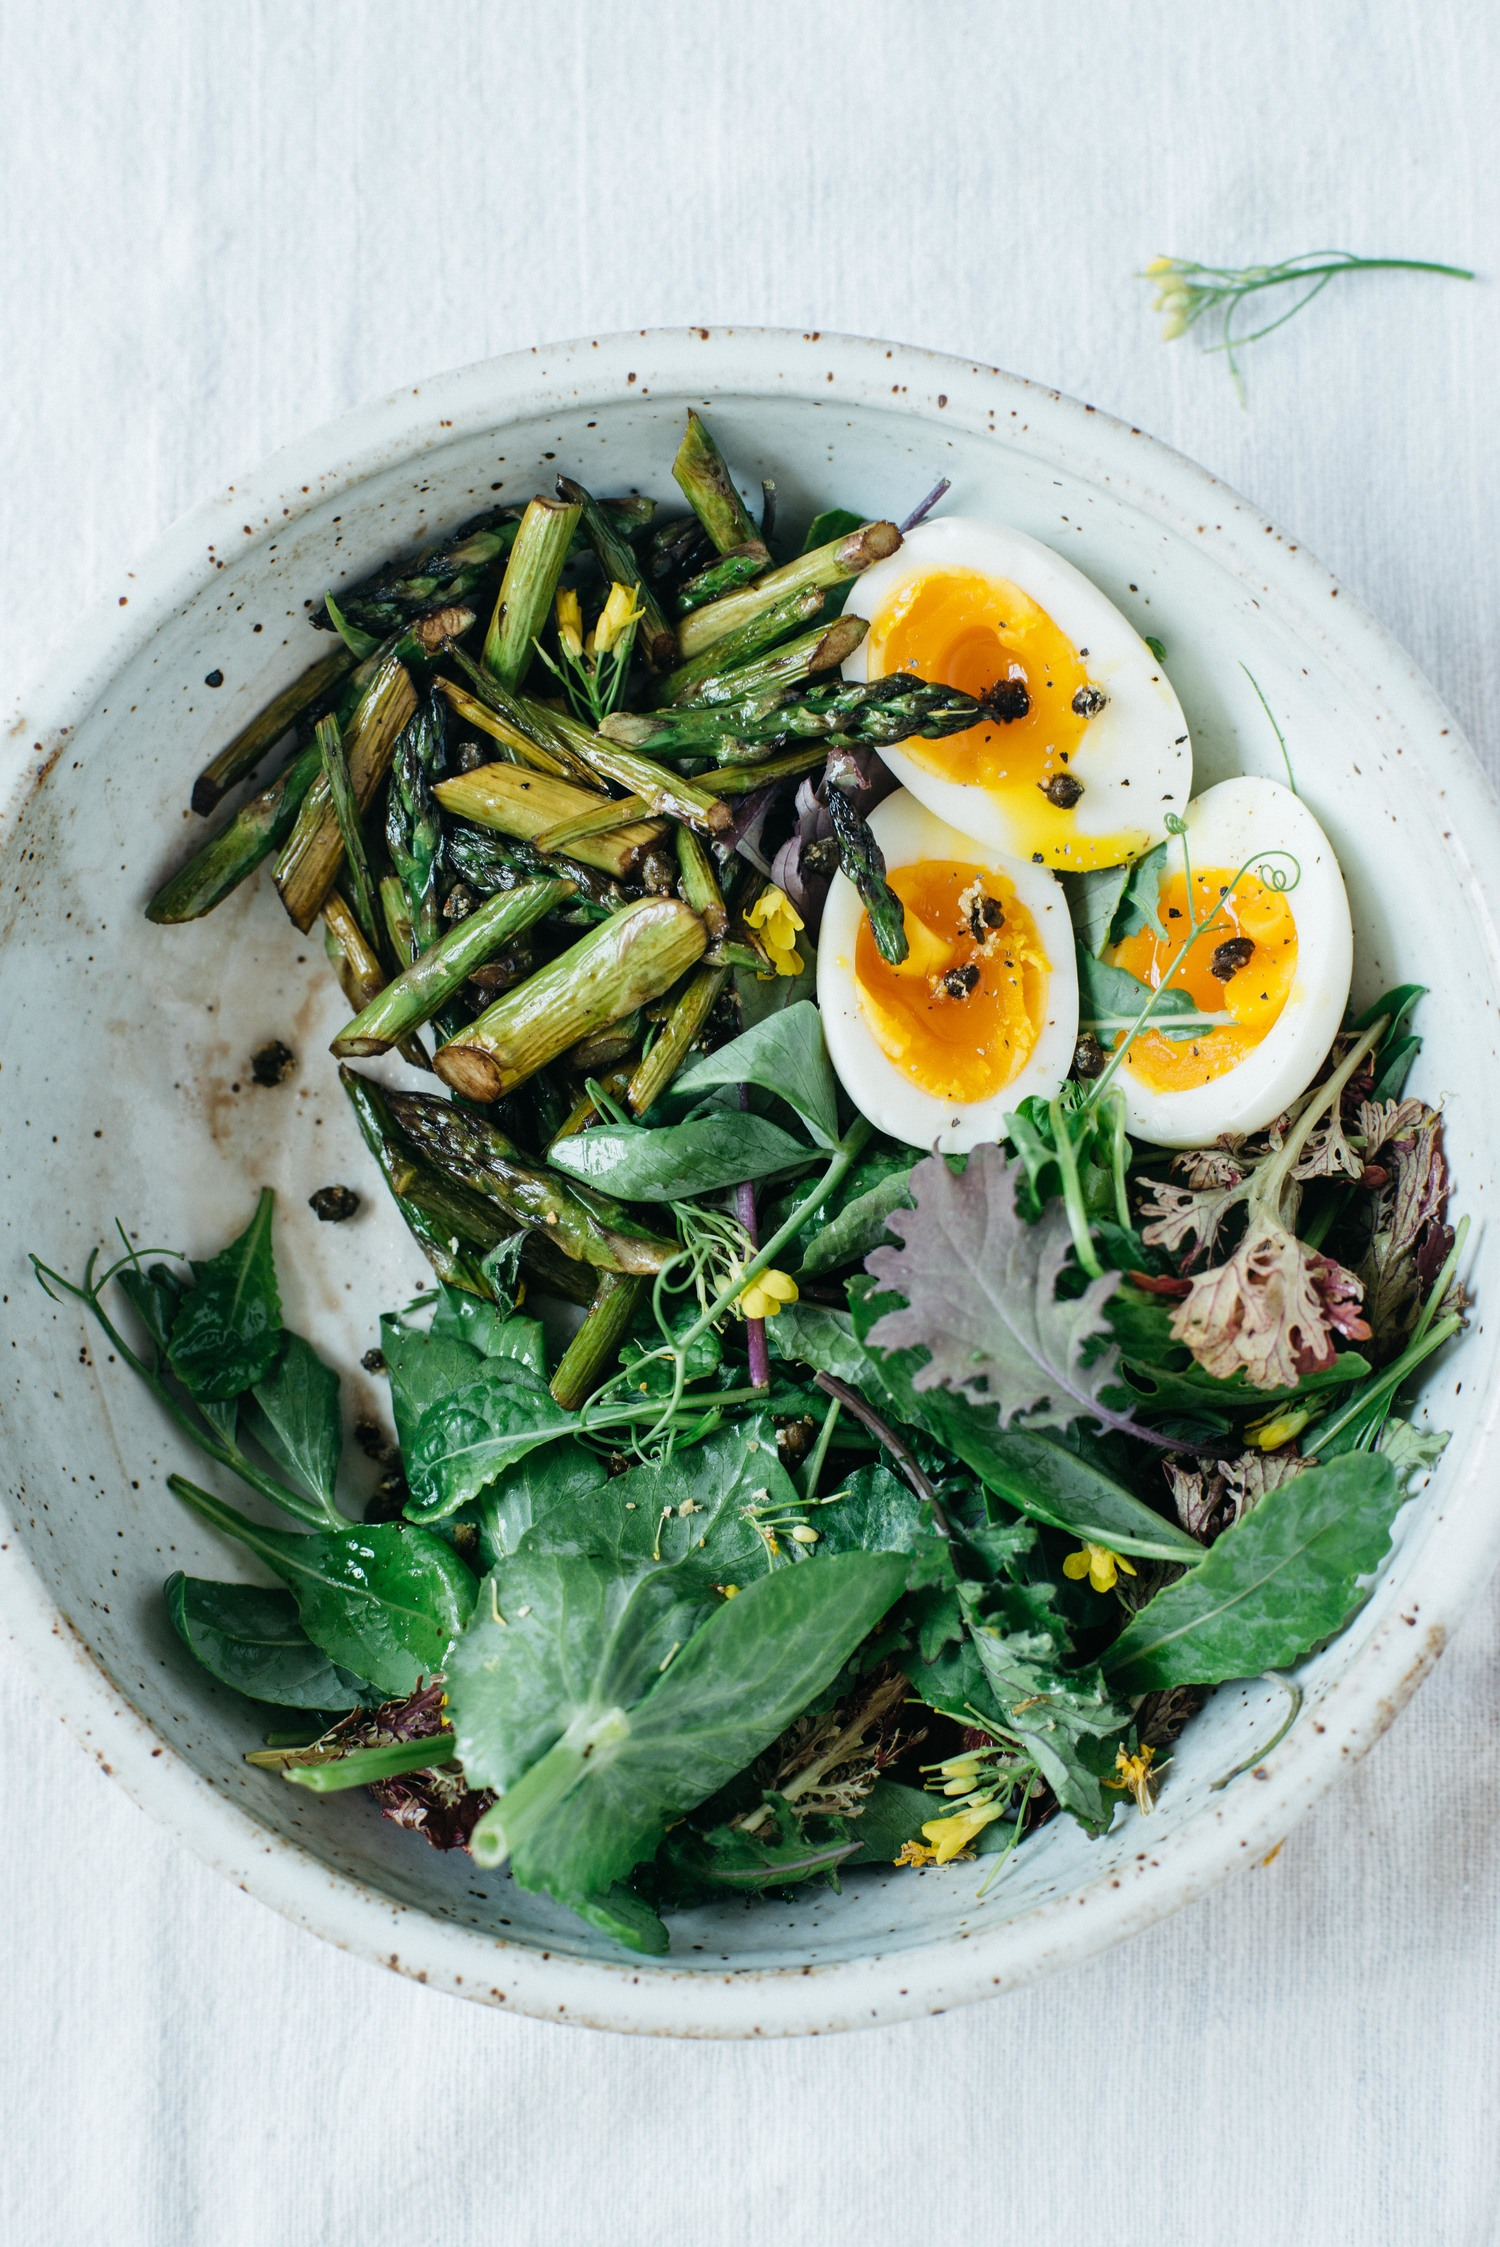 BALSAMIC ROASTED ASPARAGUS W/ FRIED CAPERS & 7-MINUTE EGGS